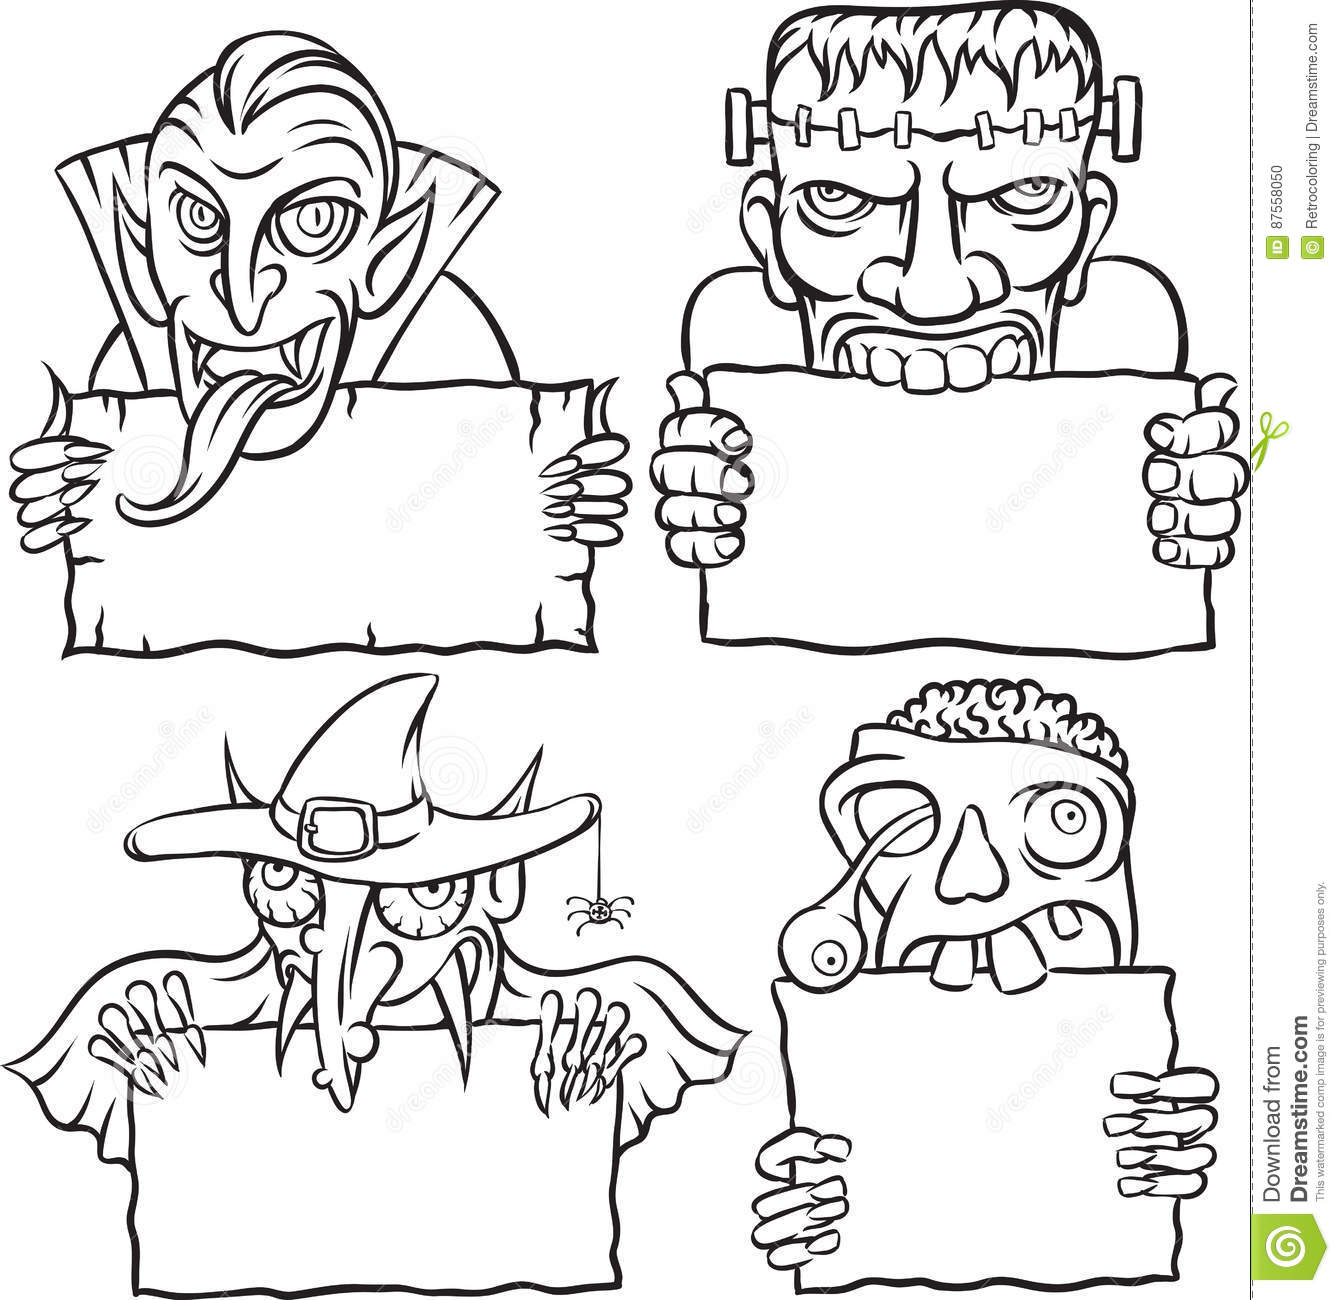 whiteboard drawing halloween monsters and vampires - Drawings Of Halloween Pictures